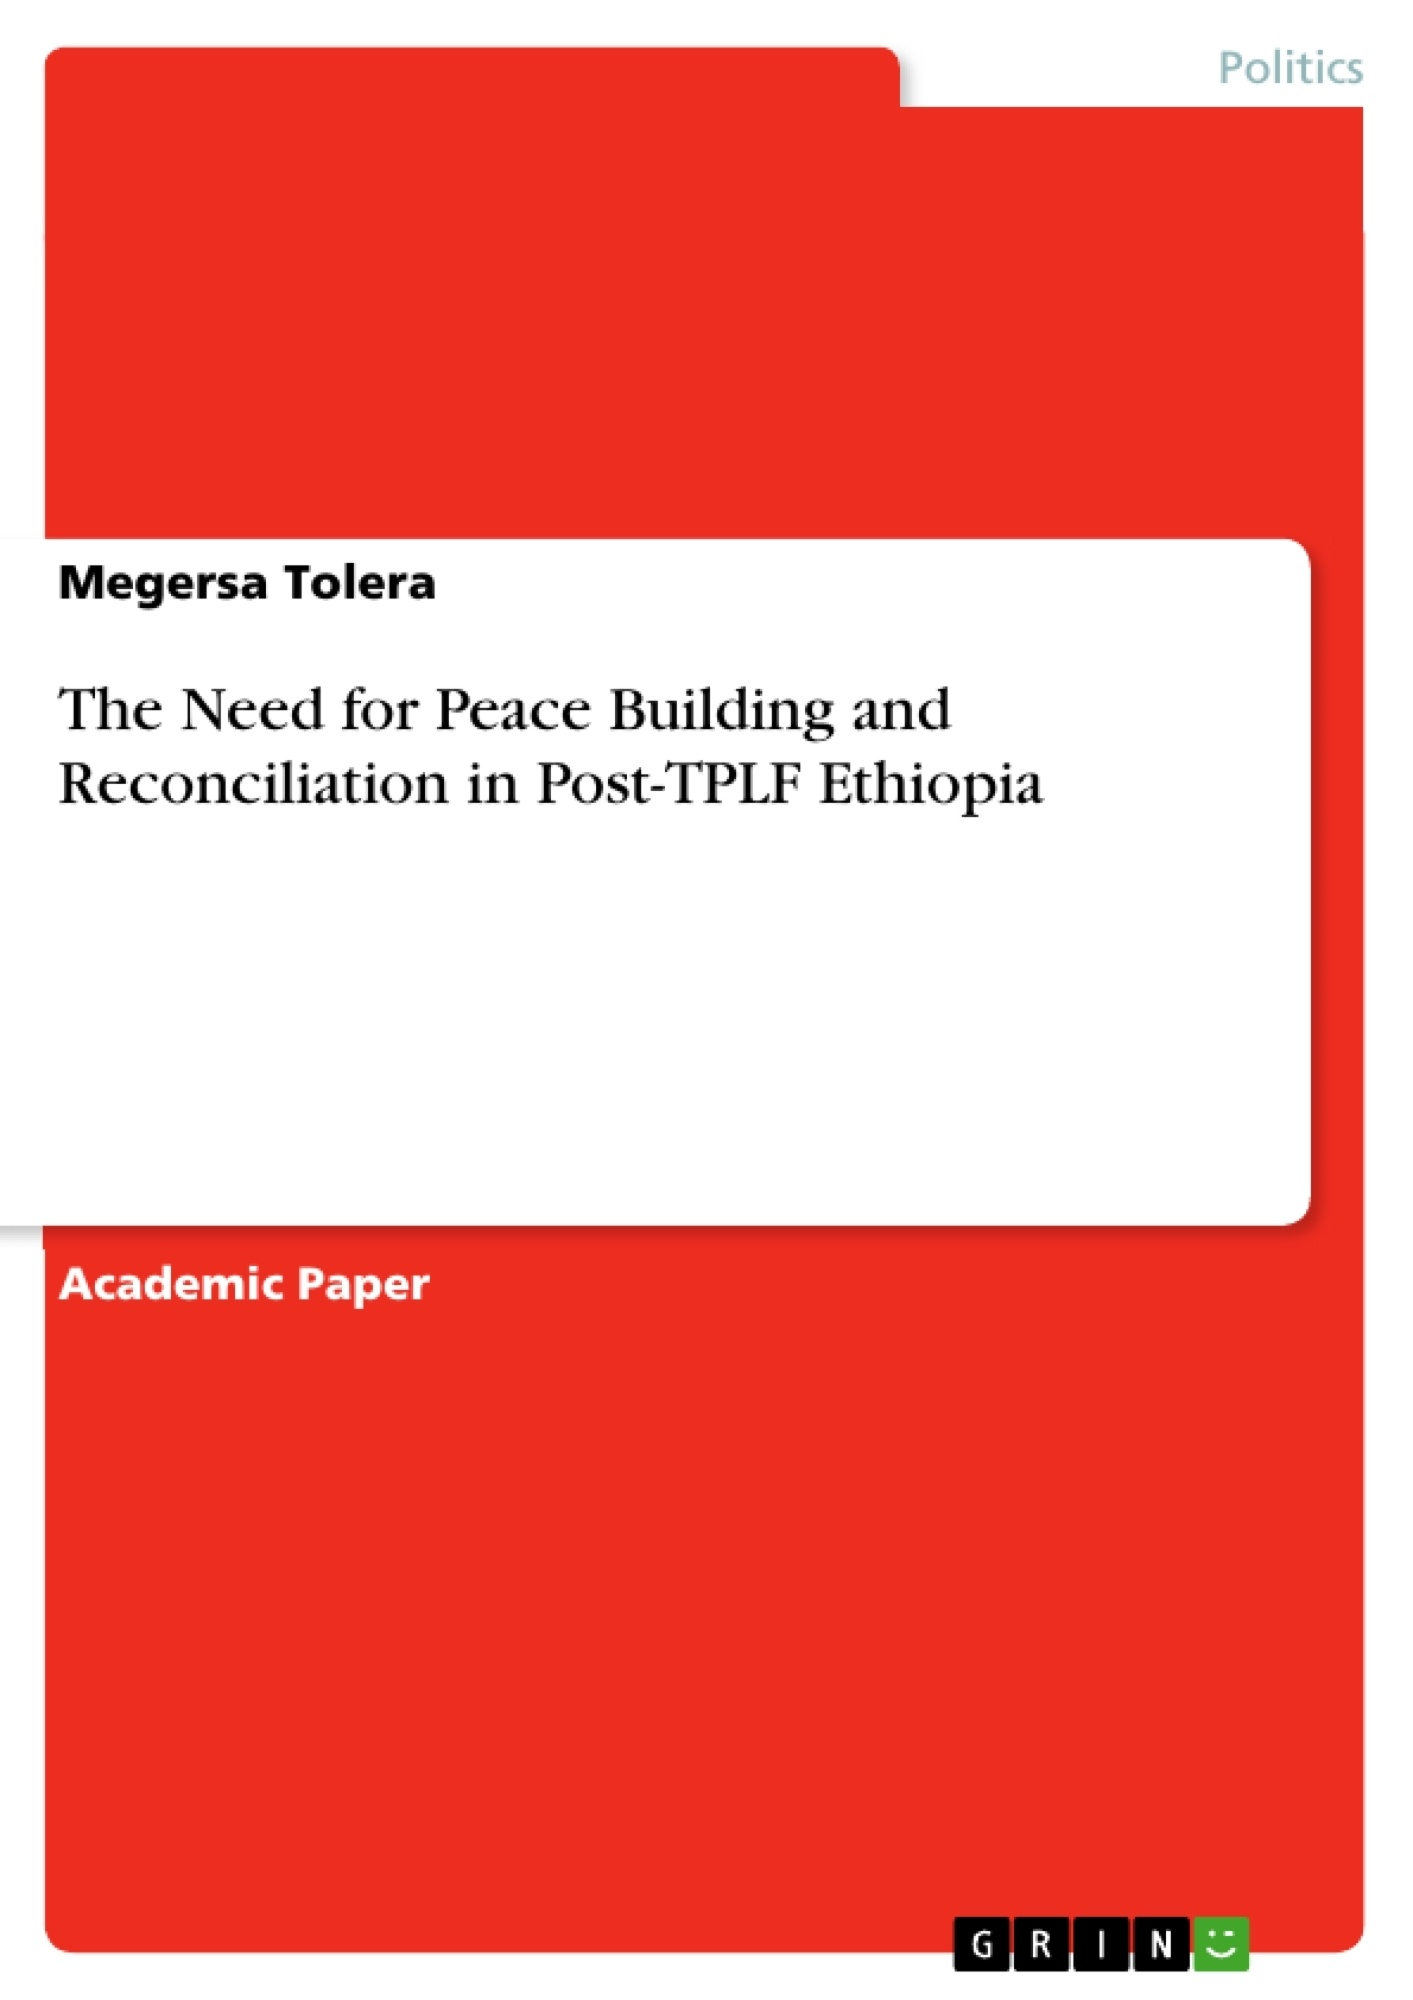 Title: The Need for Peace Building and Reconciliation in Post-TPLF Ethiopia